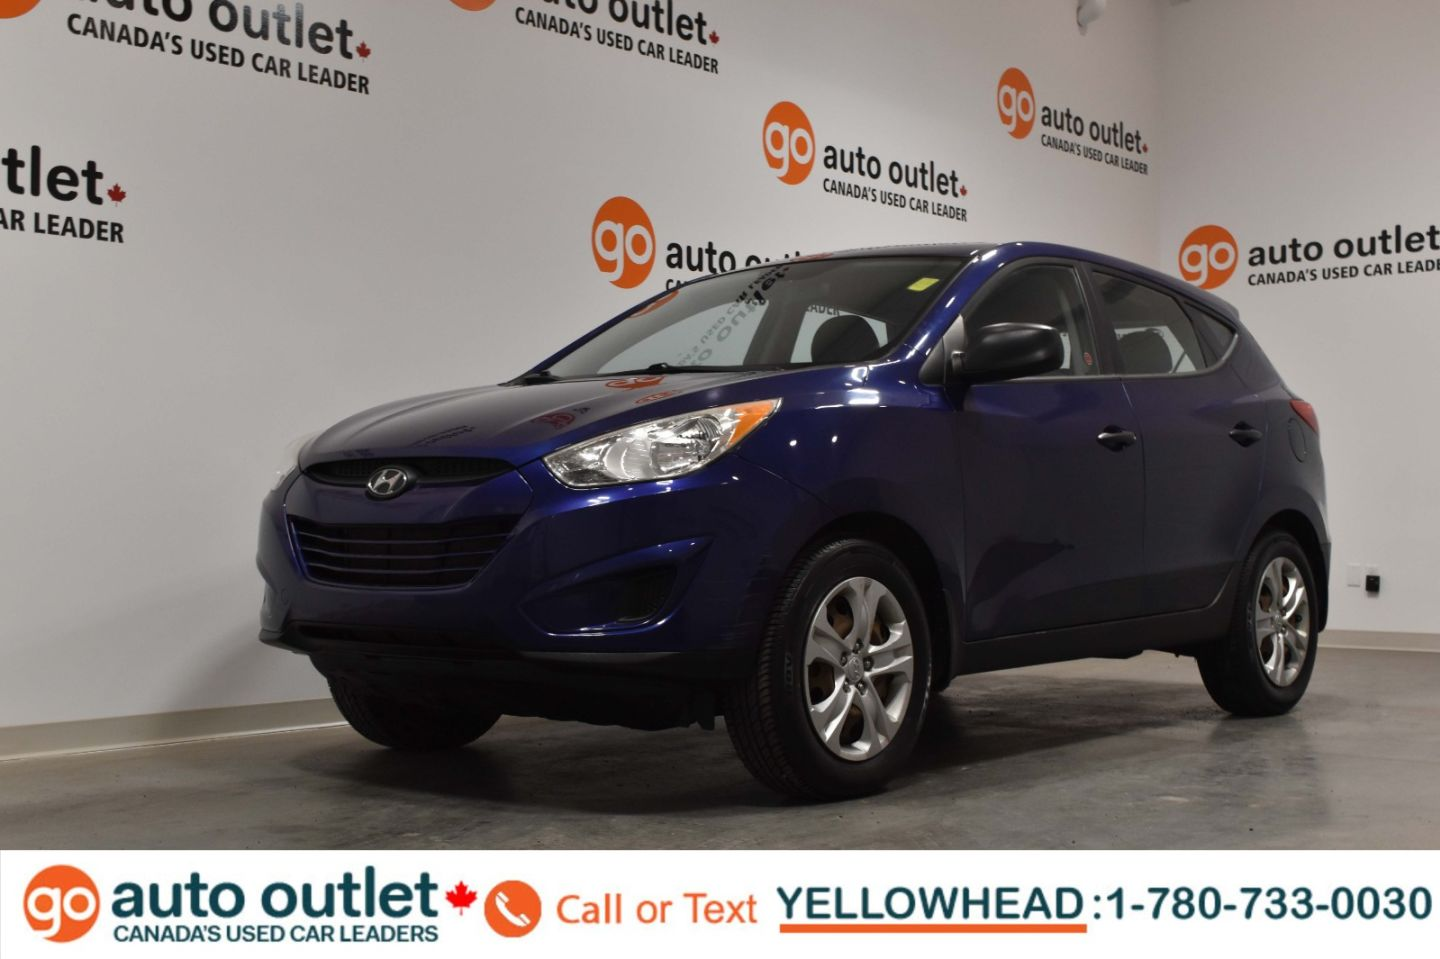 2011 Hyundai Tucson L for sale in Edmonton, Alberta